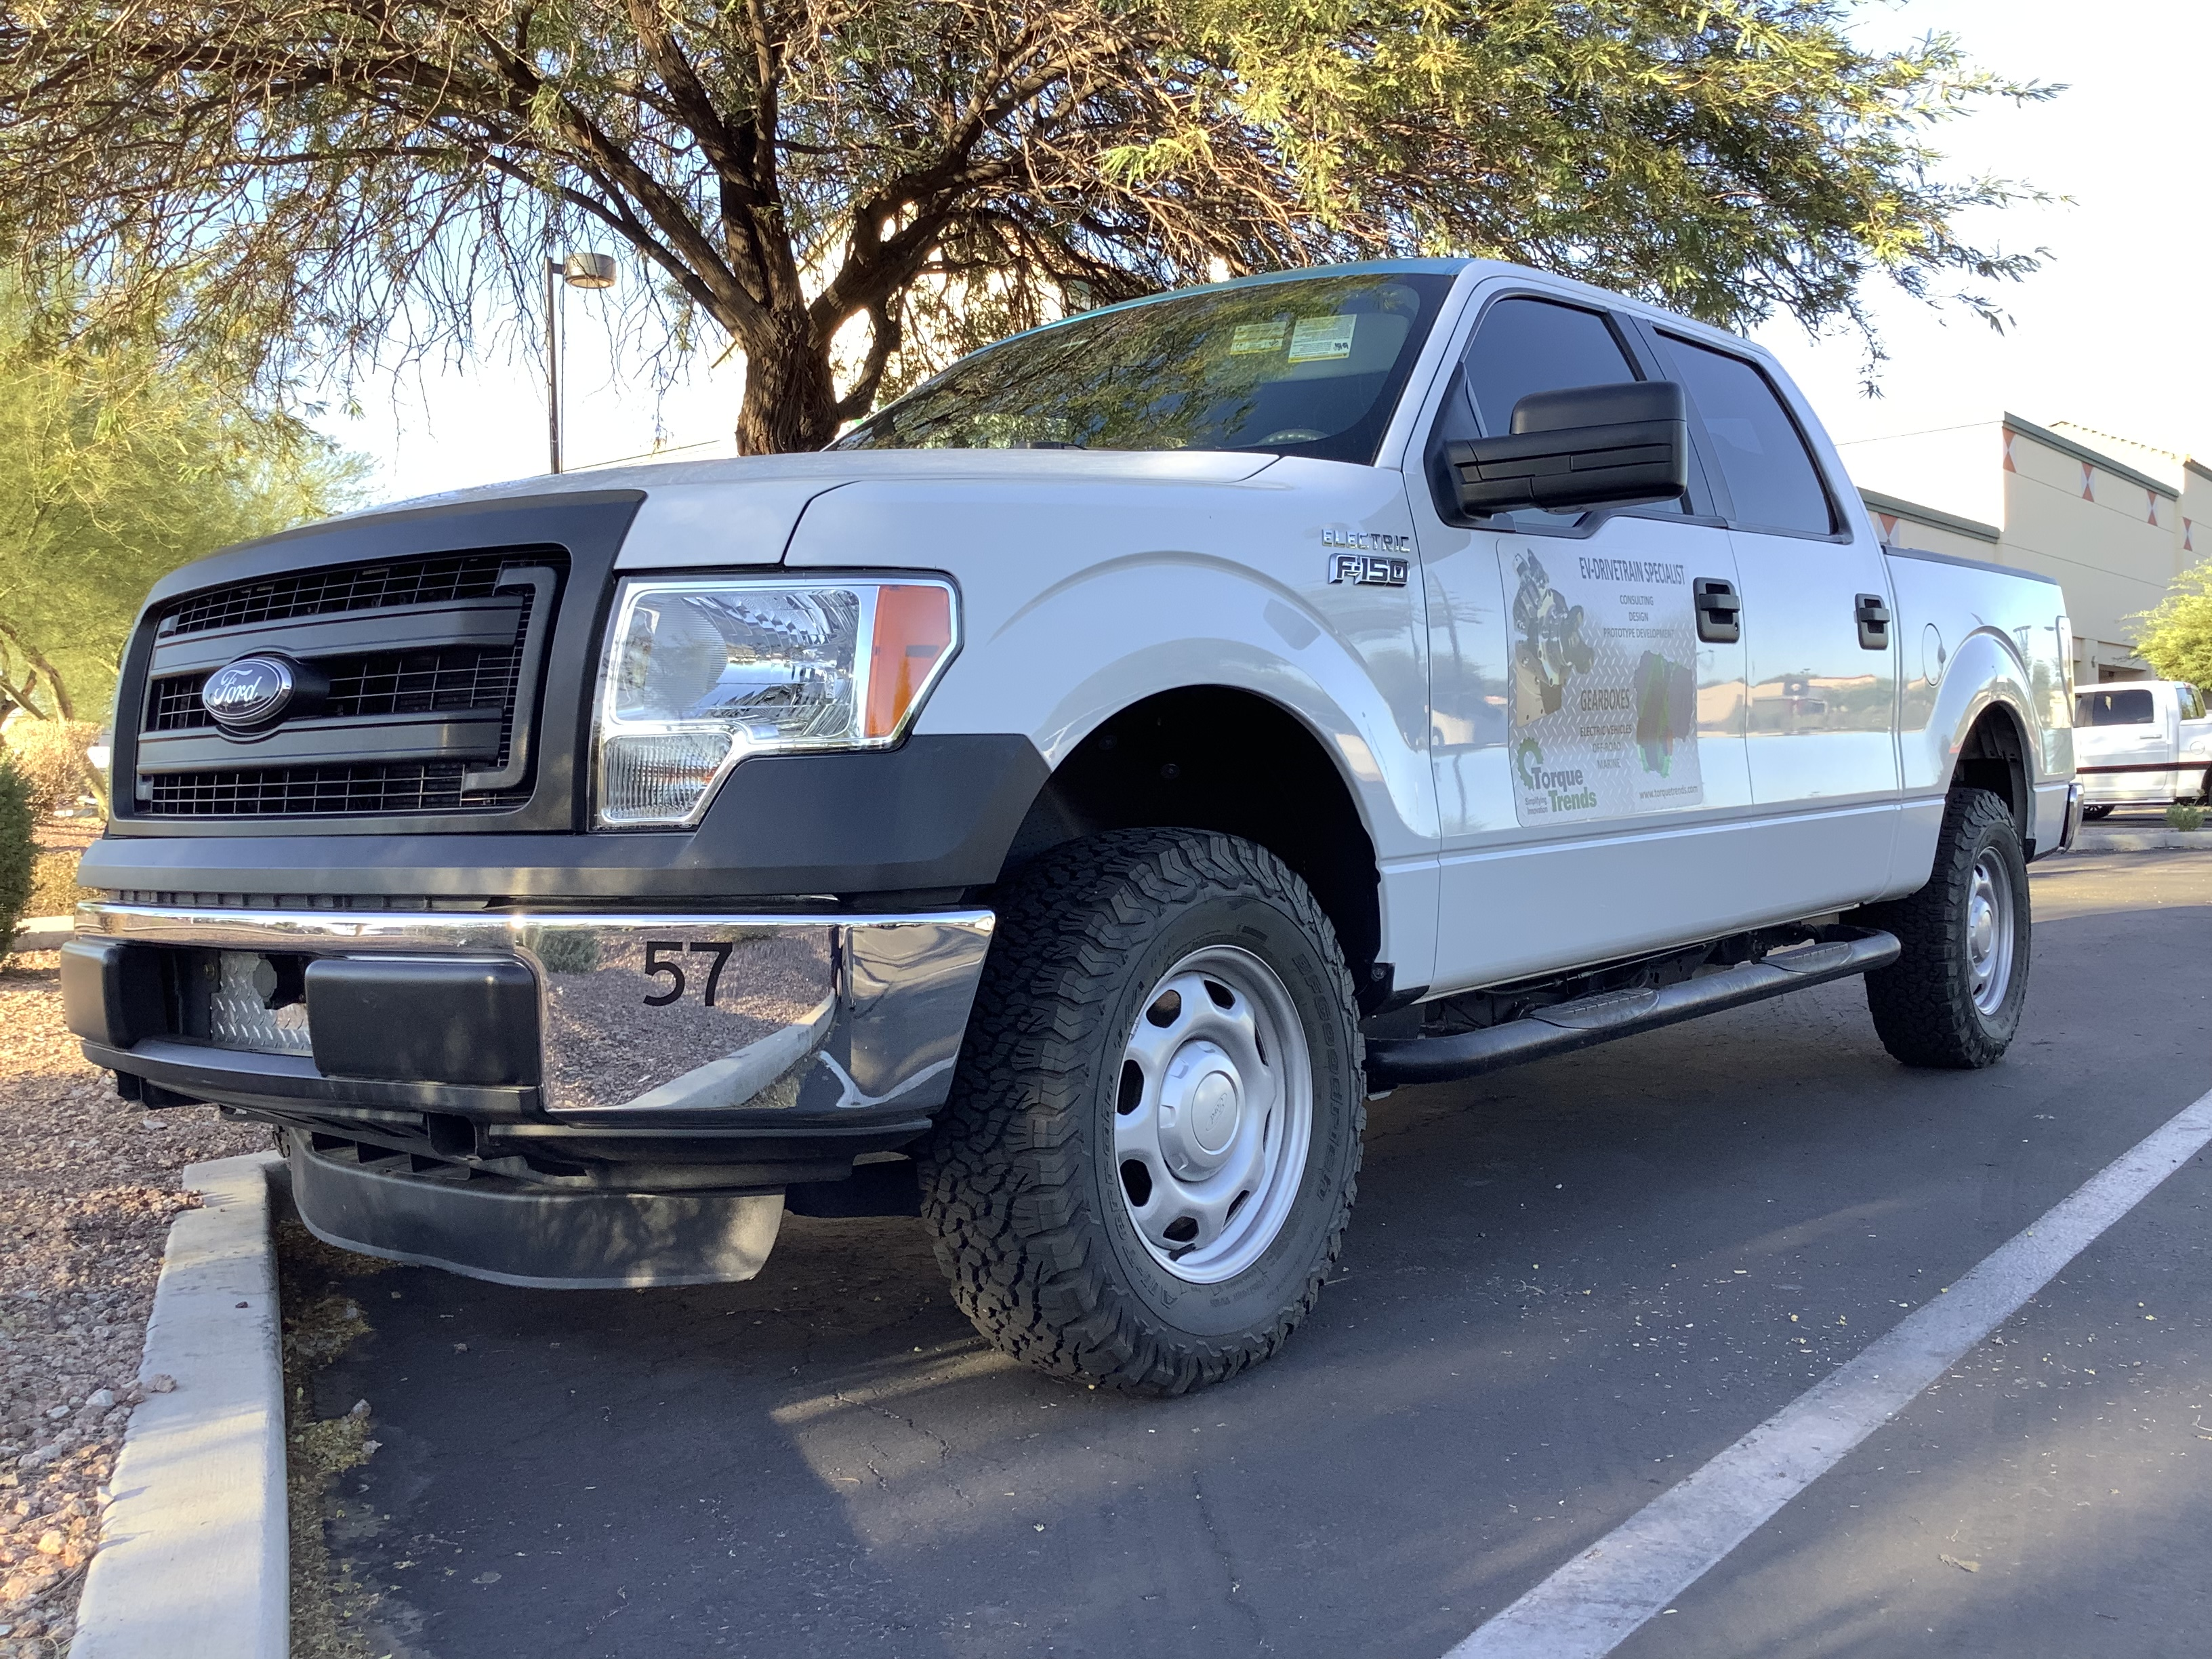 Mitchell Yow's fully electric Ford F-150